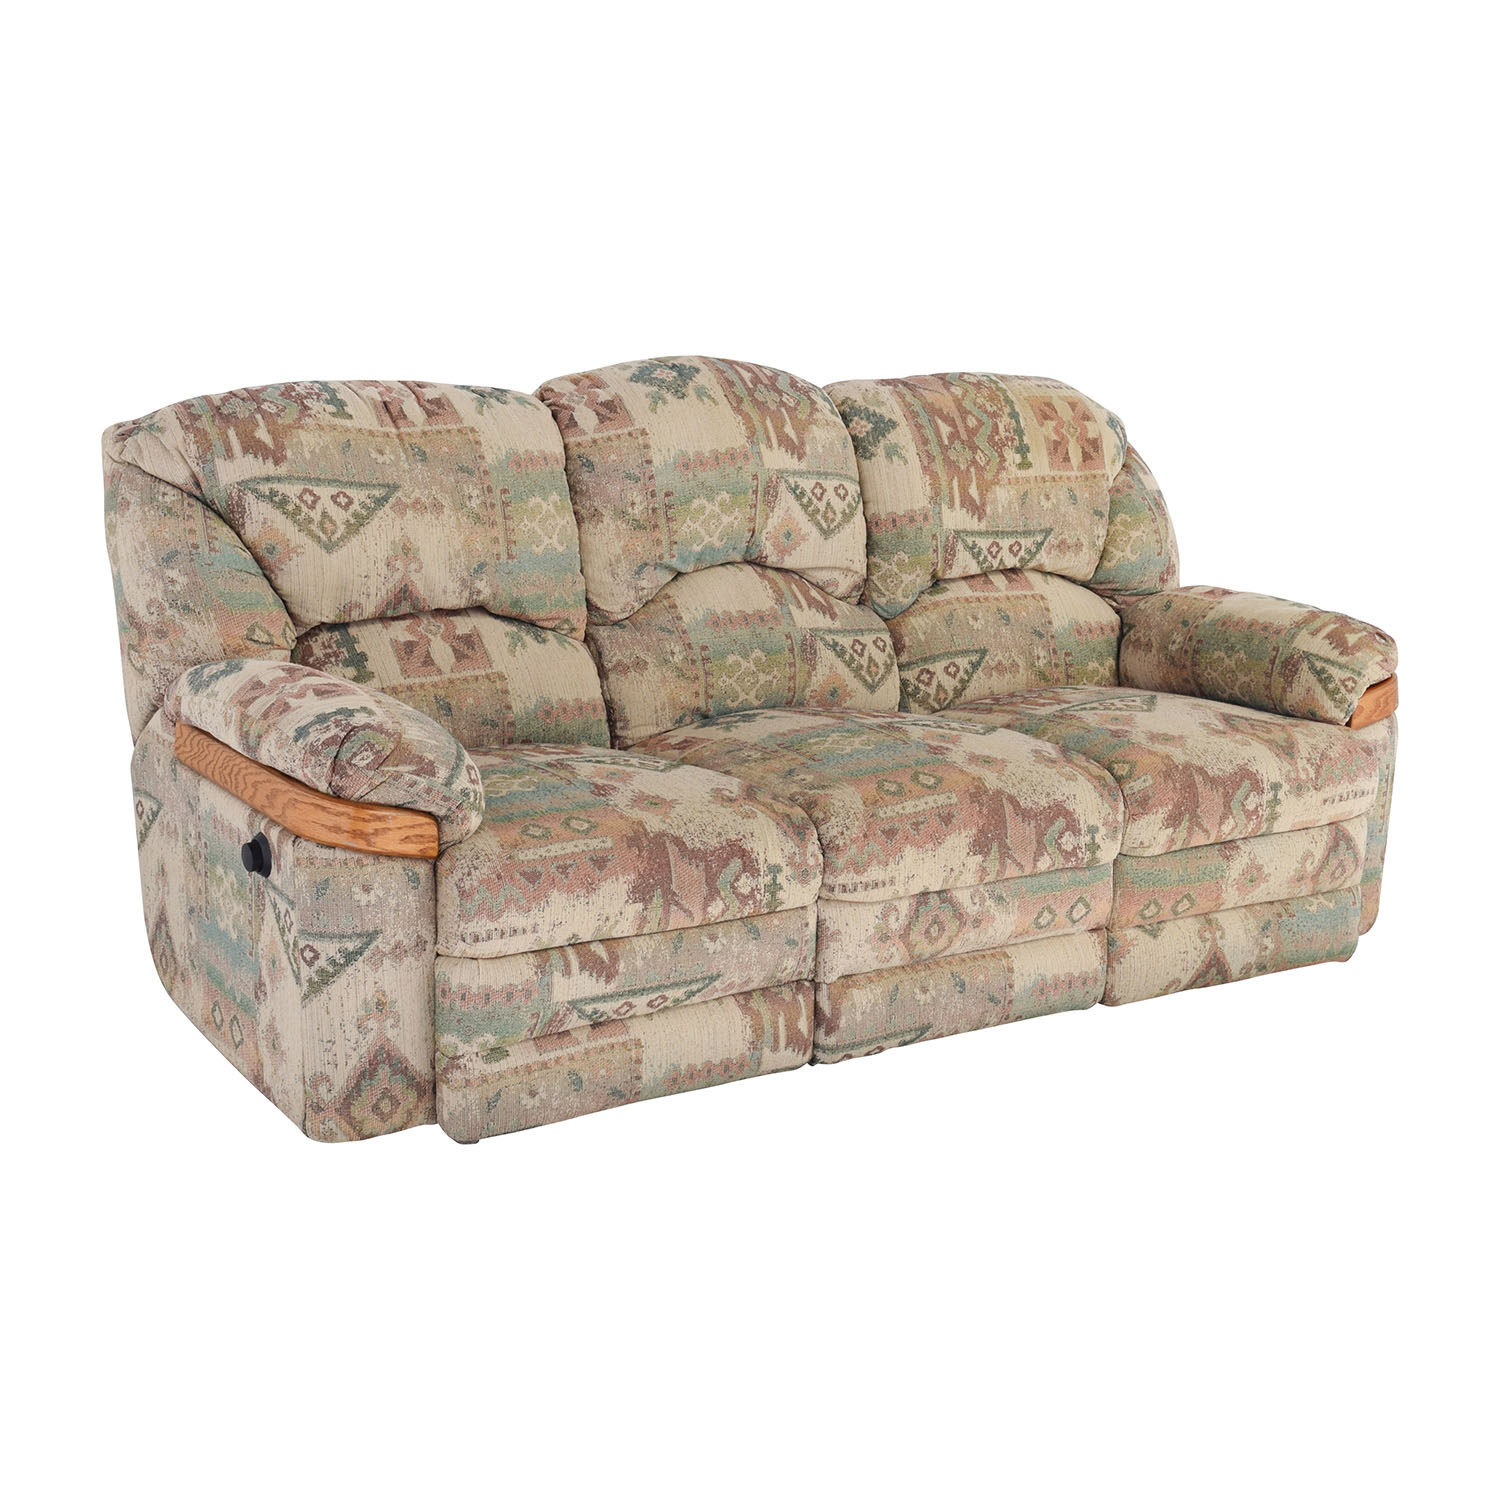 Second hand recliner sofa for Second hand sofas